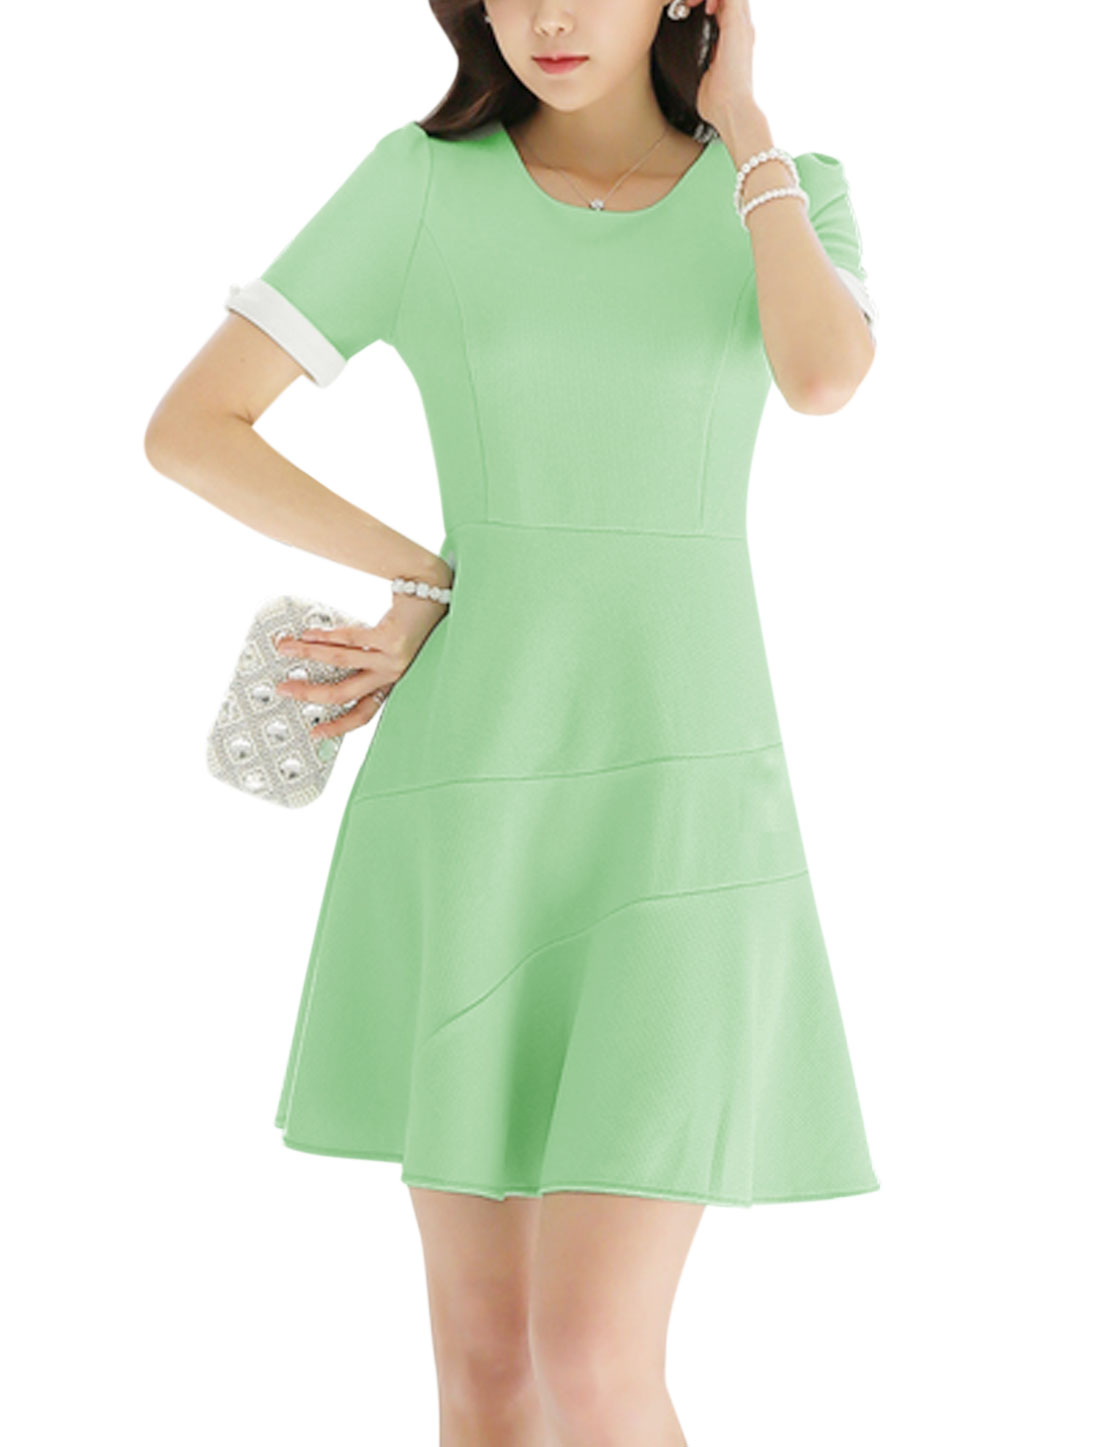 Ladies Short Sleeve Round Neck Texture Unlined Casual Dress Mint L